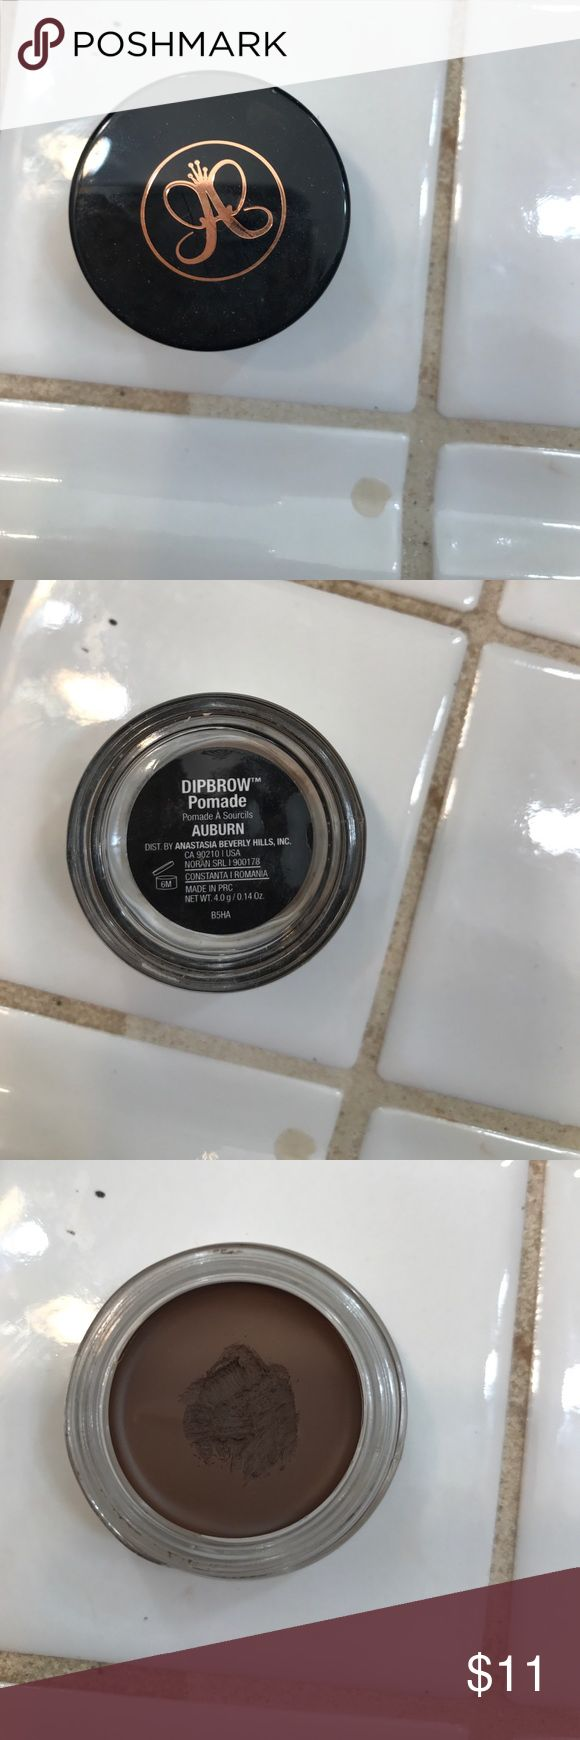 Anastasia Dip Brow Auburn Used two times. Authentic. Bought at Sephora but not my color. Anastasia Beverly Hills Makeup Eyebrow Filler